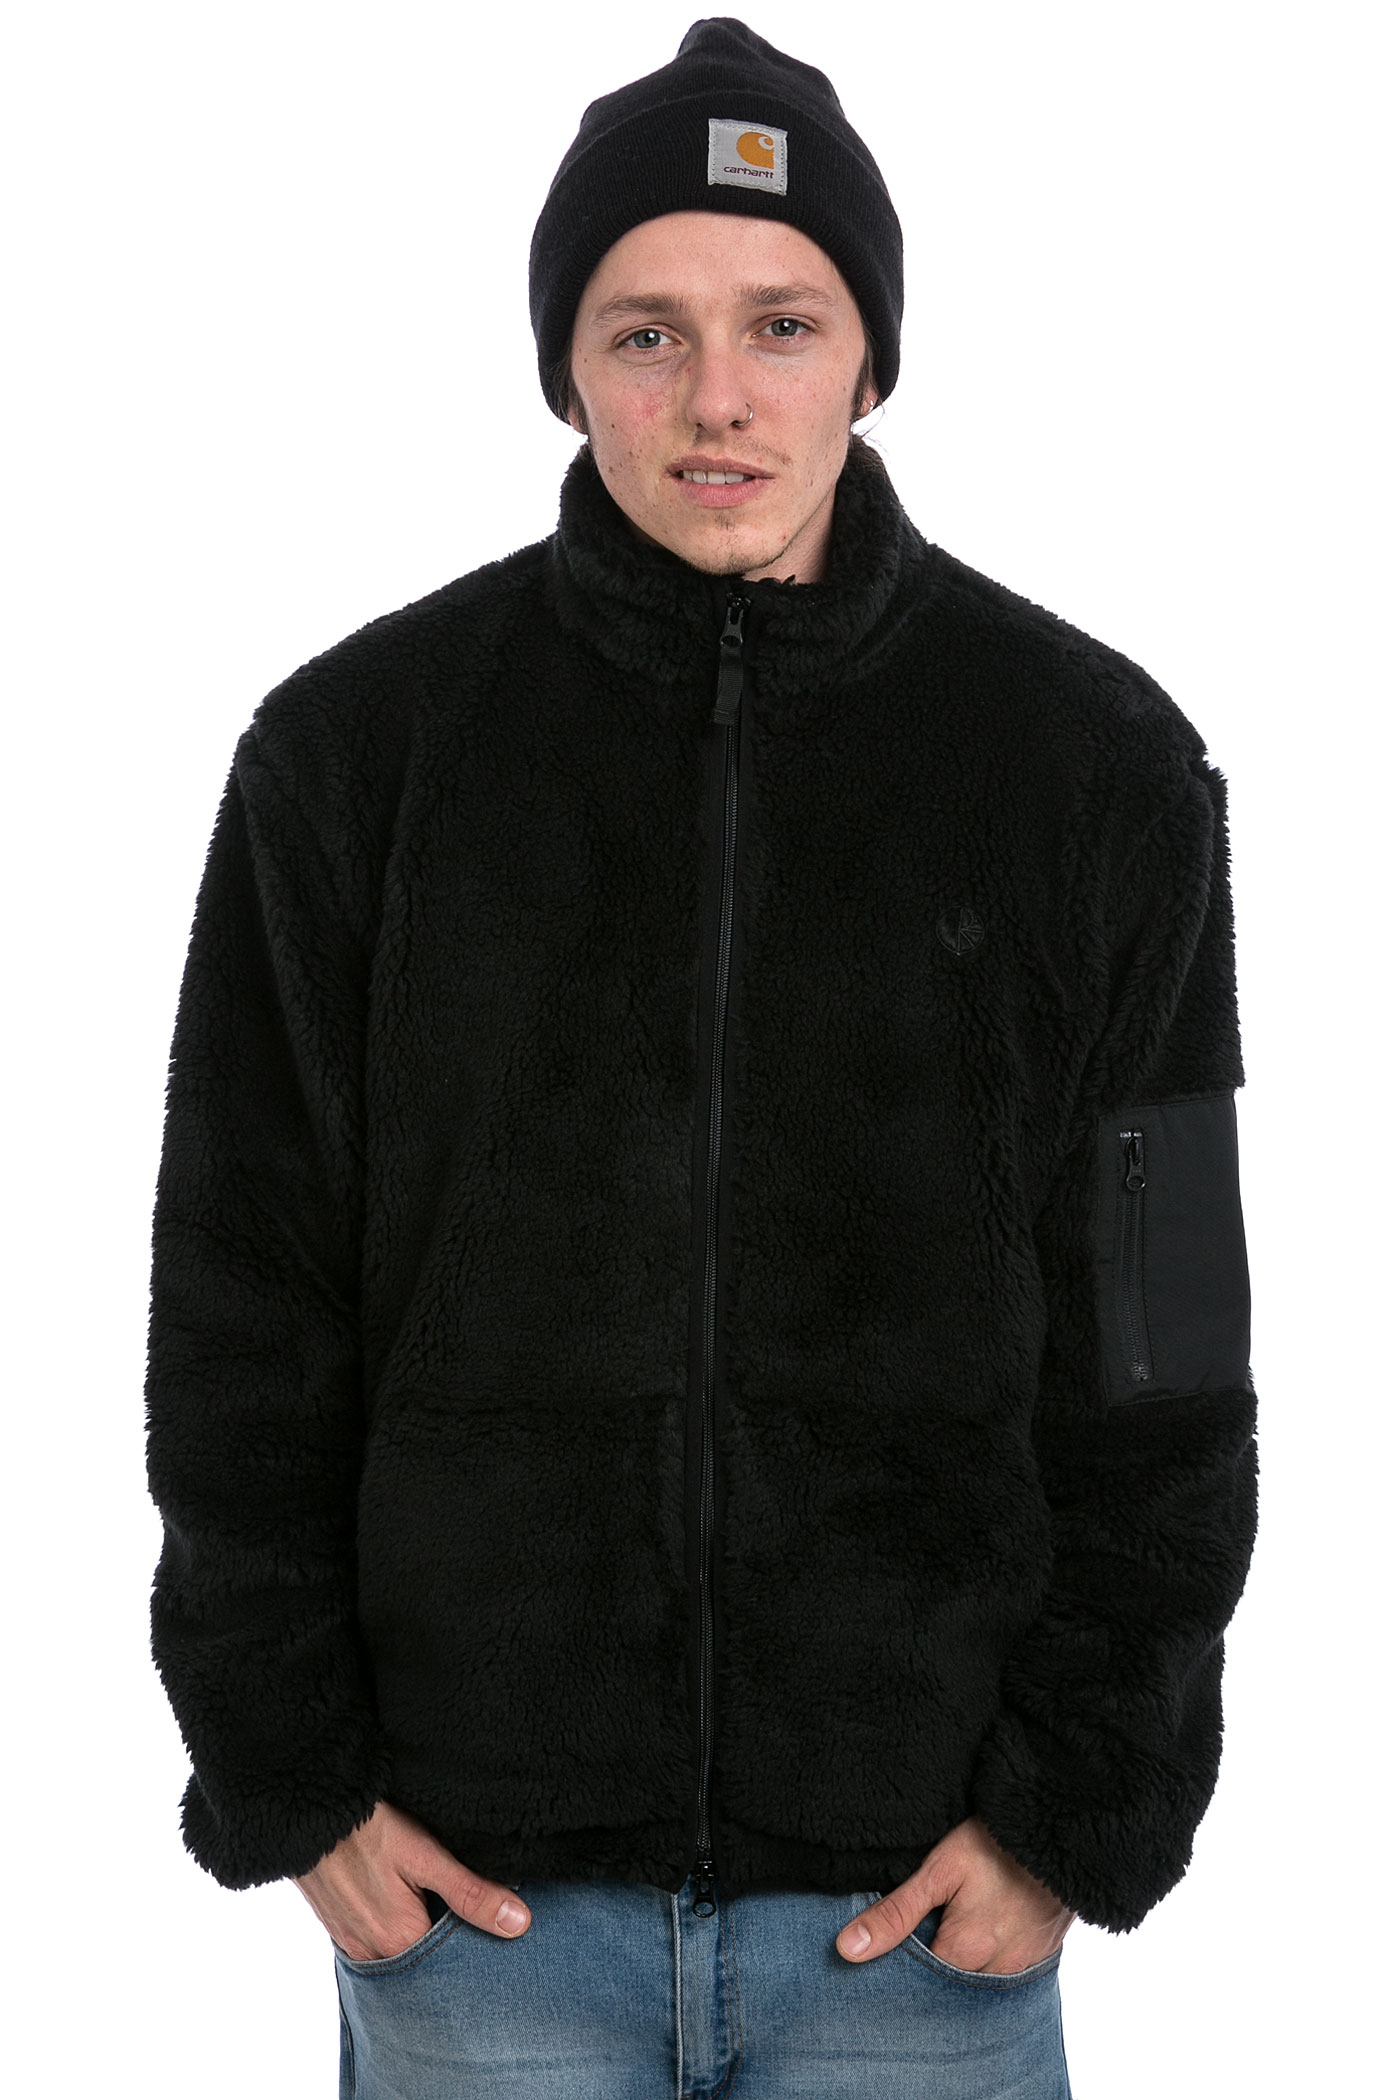 Polar Skateboards Halberg Berber Fleece Jacket (black) buy at ...